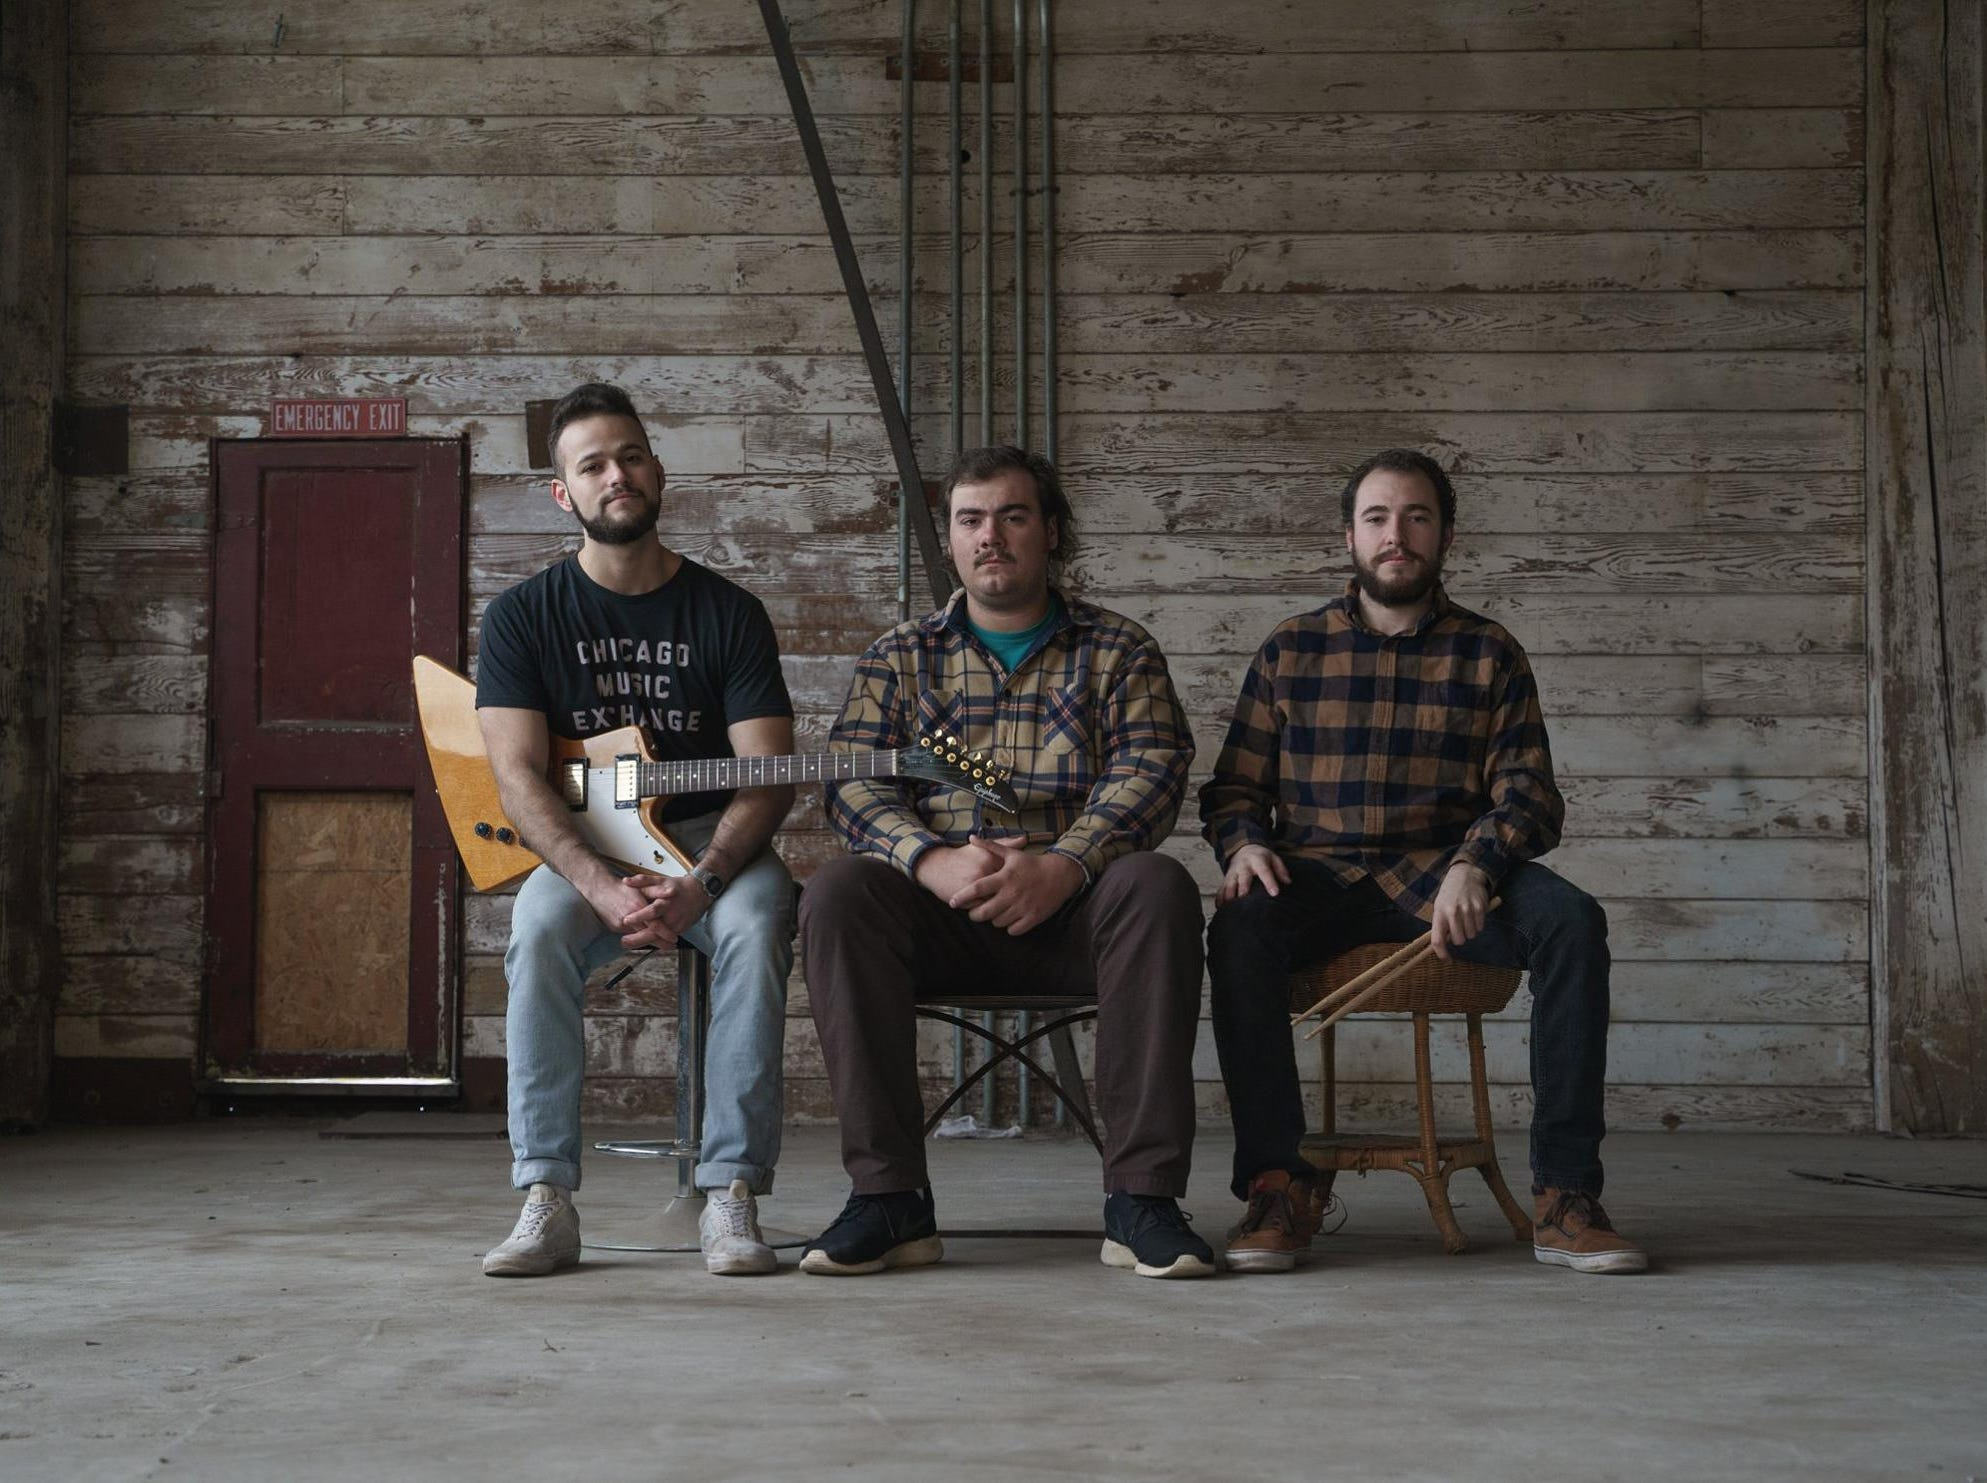 Live music: Local/regional bandsEasy There Tiger, Wild Ire andWolves at War will perform, 9 p.m. to midnight Saturday, May 25,The Space Concert Club, 1128 Edgewater St. NW. 971-208-3995.